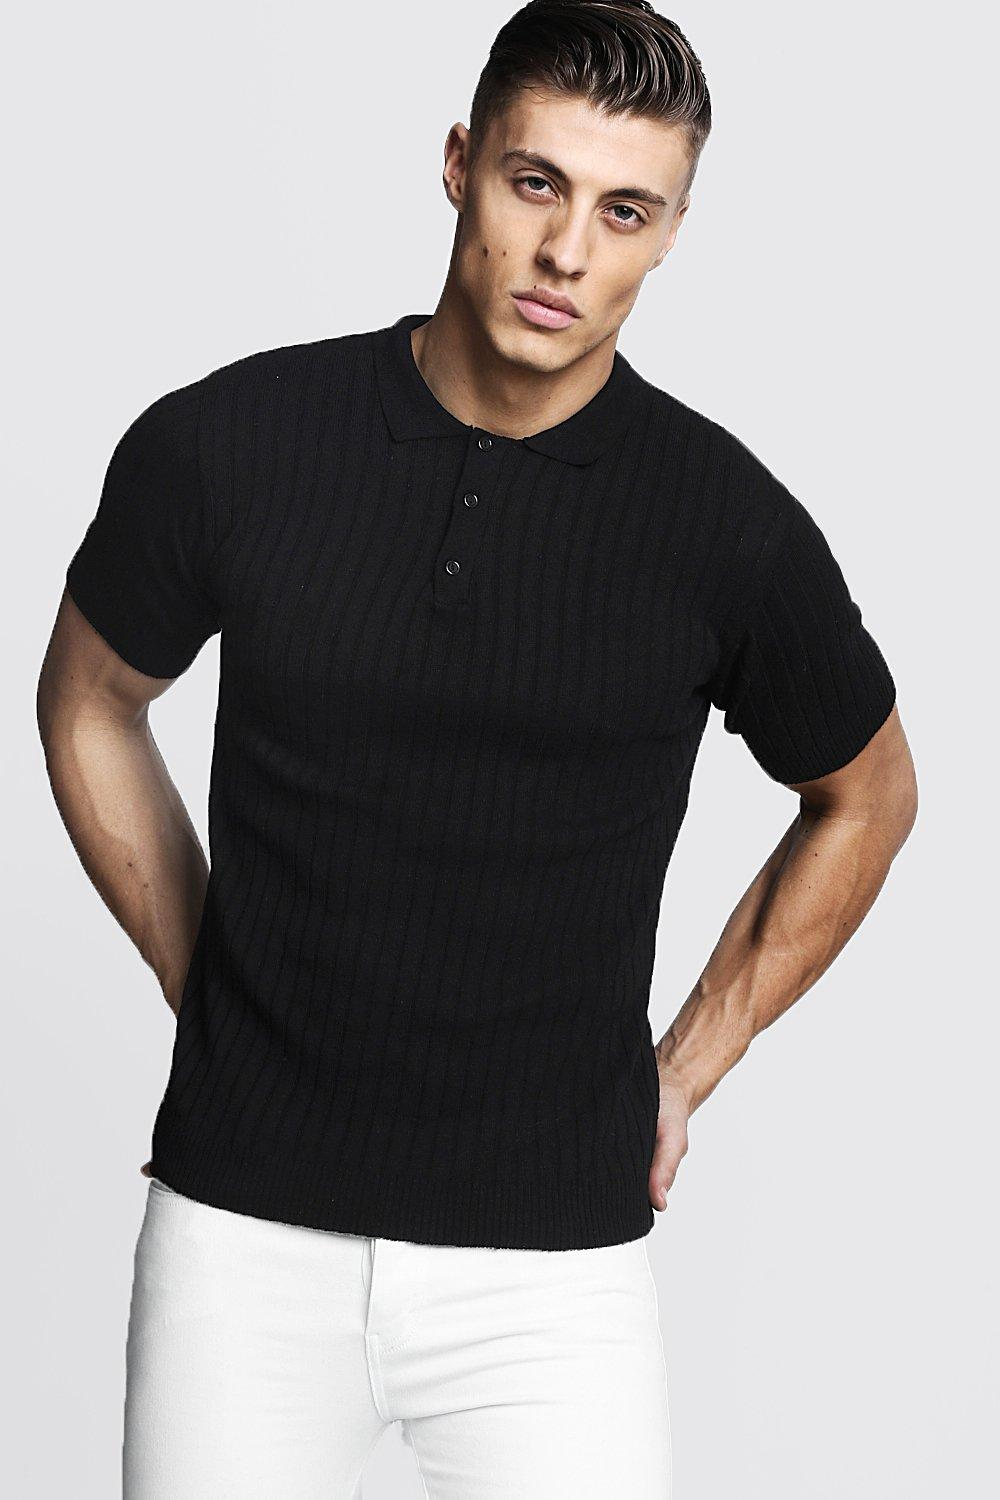 1940s UK and Europe Men's Clothing – WW2, Swing Dance, Goodwin Mens Muscle Fit Ribbed Knitted Polo - Black $13.00 AT vintagedancer.com